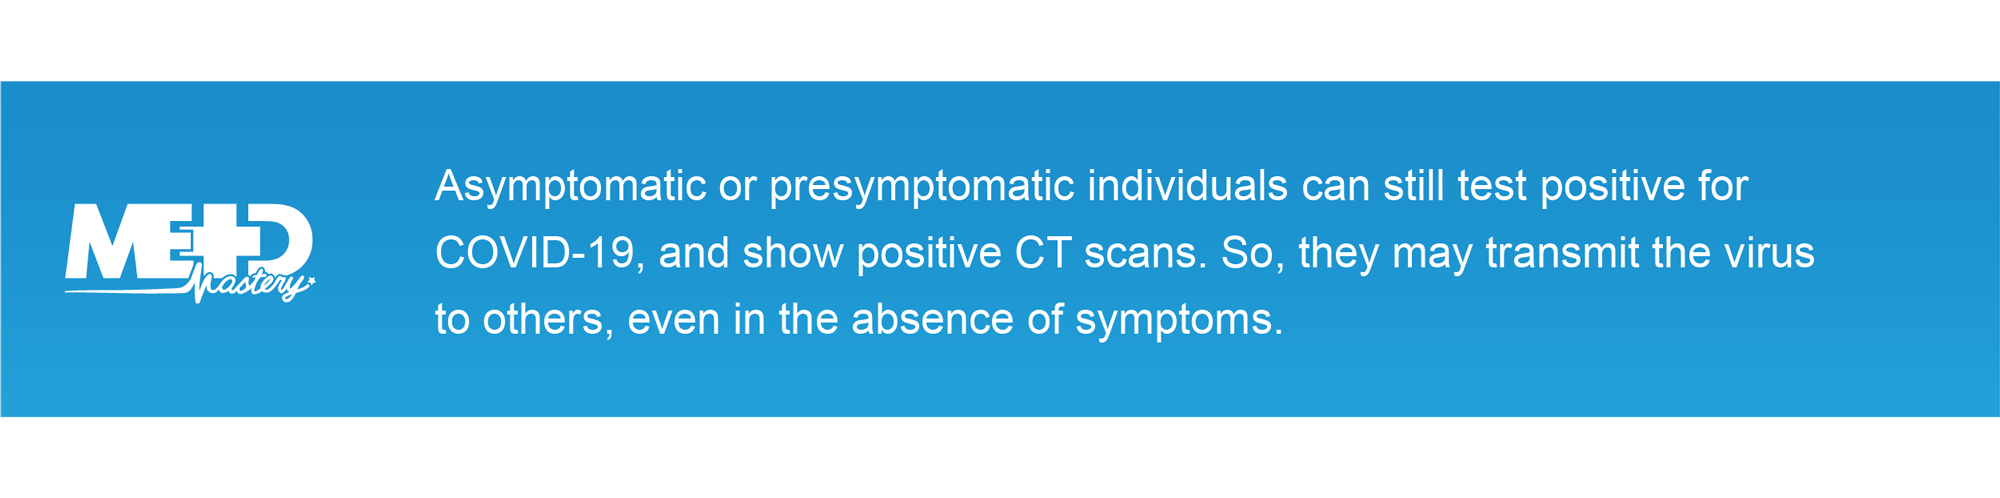 Asymptomatic or presymptomatic individuals can still test positive for COVID-19 and show positive CT scans. So, they may transmit the virus to others, even in the absence of symptoms.